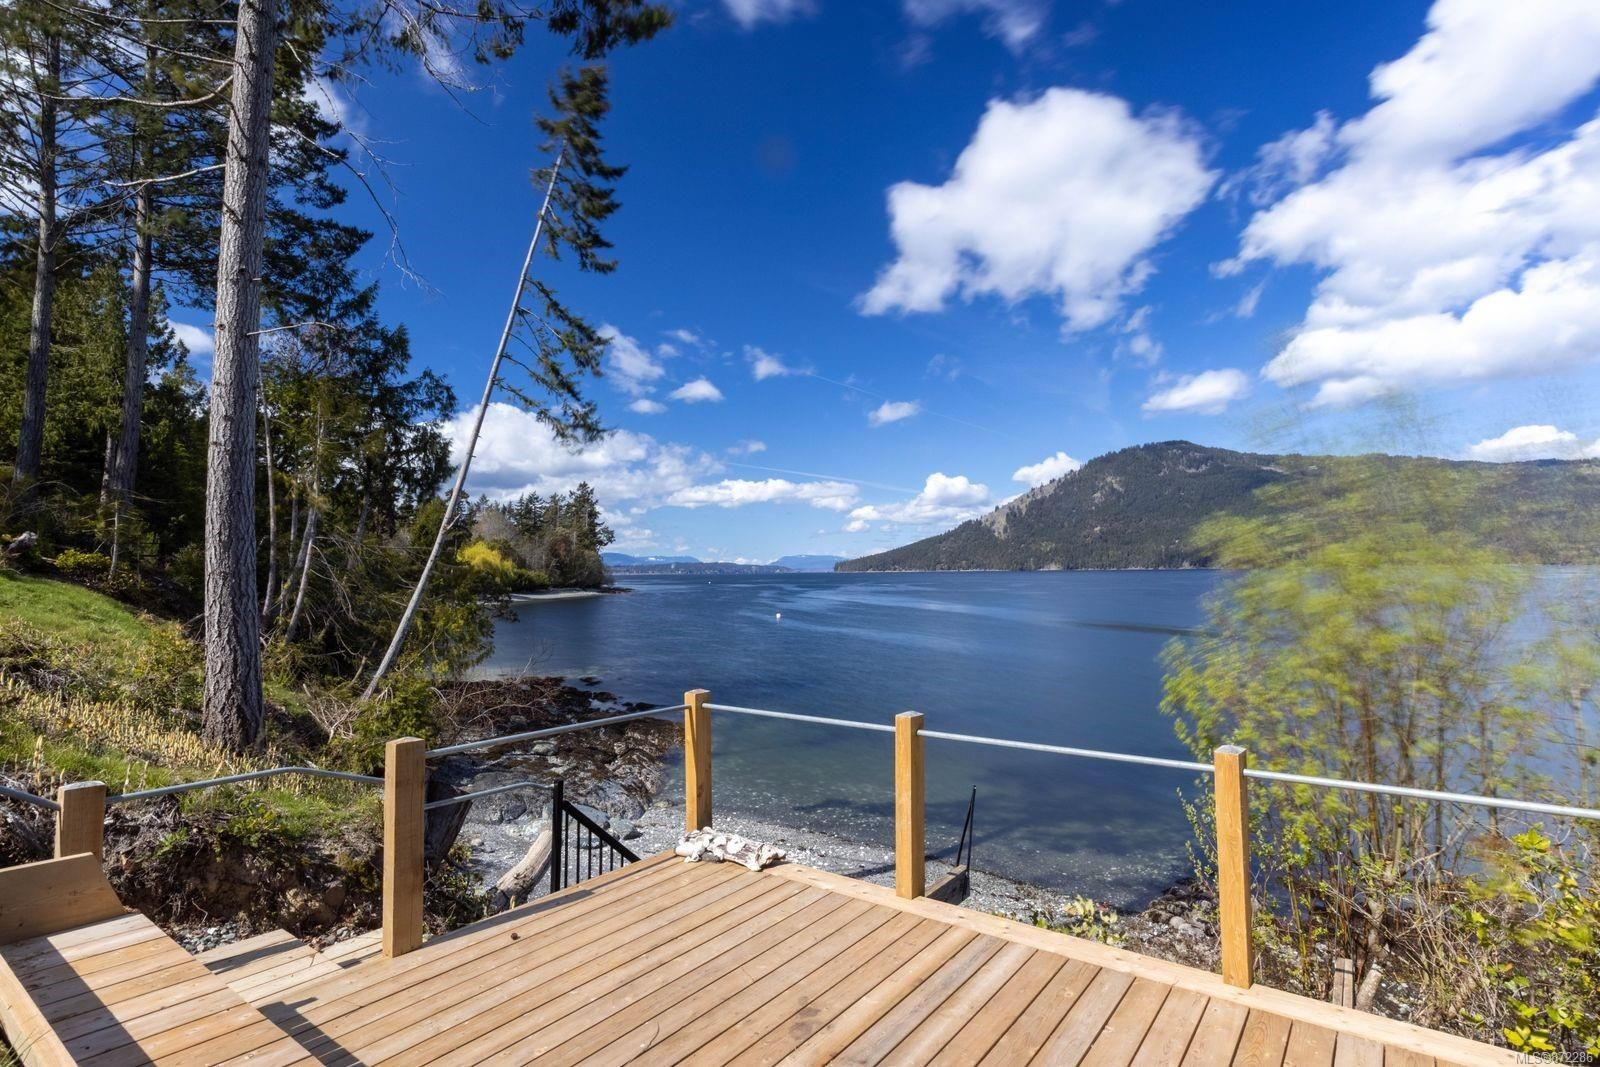 Main Photo: 1390 Lands End Rd in : NS Lands End Land for sale (North Saanich)  : MLS®# 872286